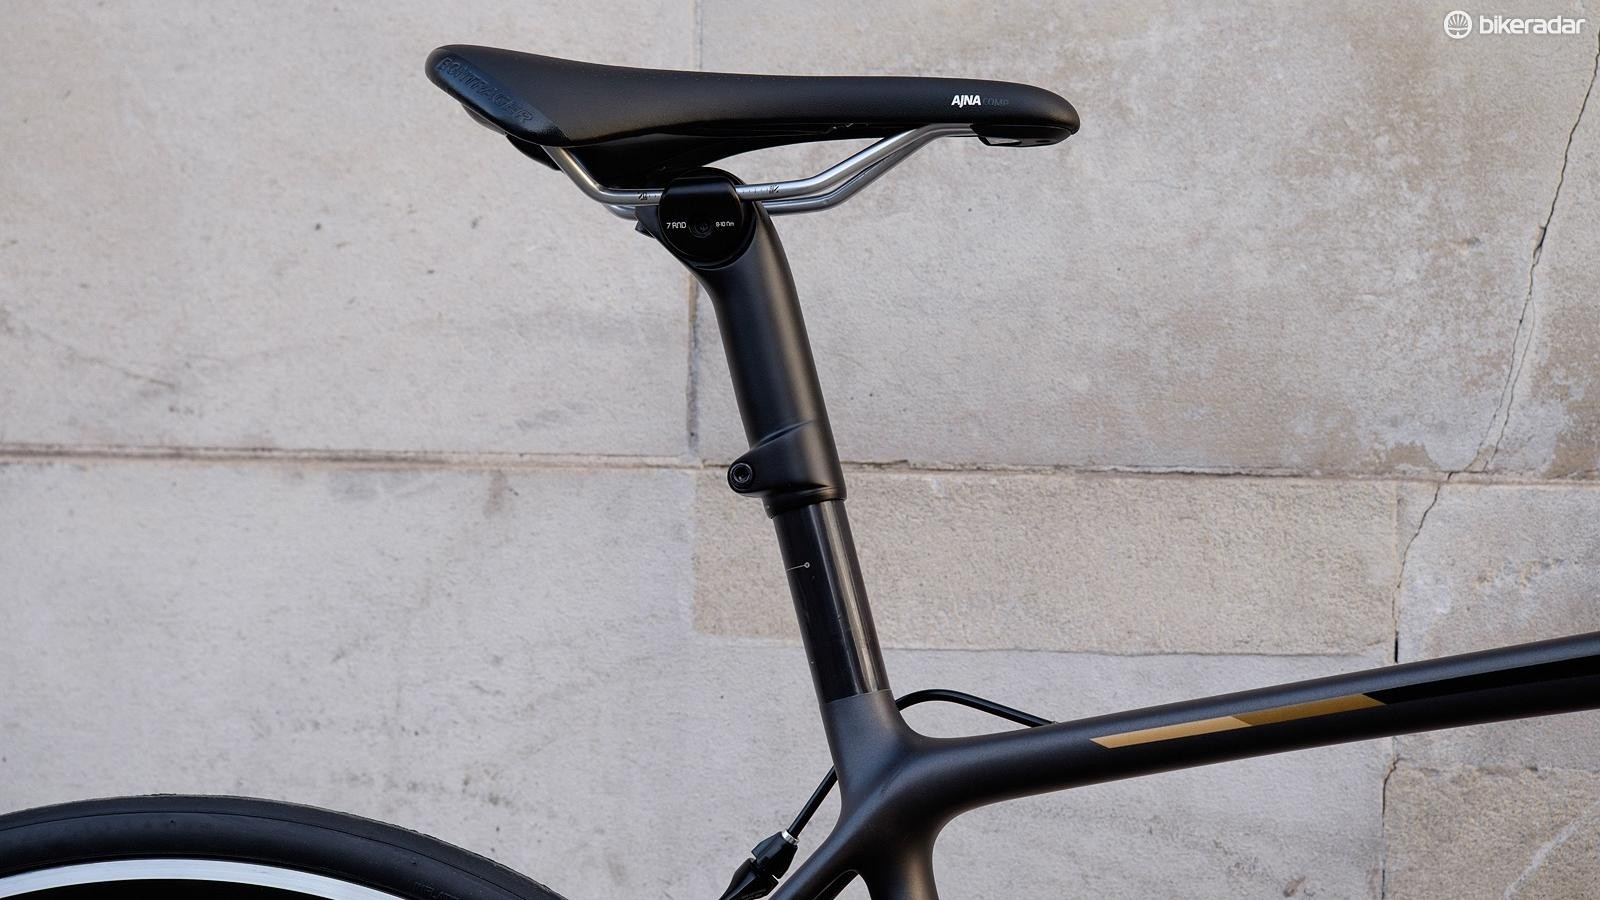 An interesting seatpost design helps do a good job of smoothing the road